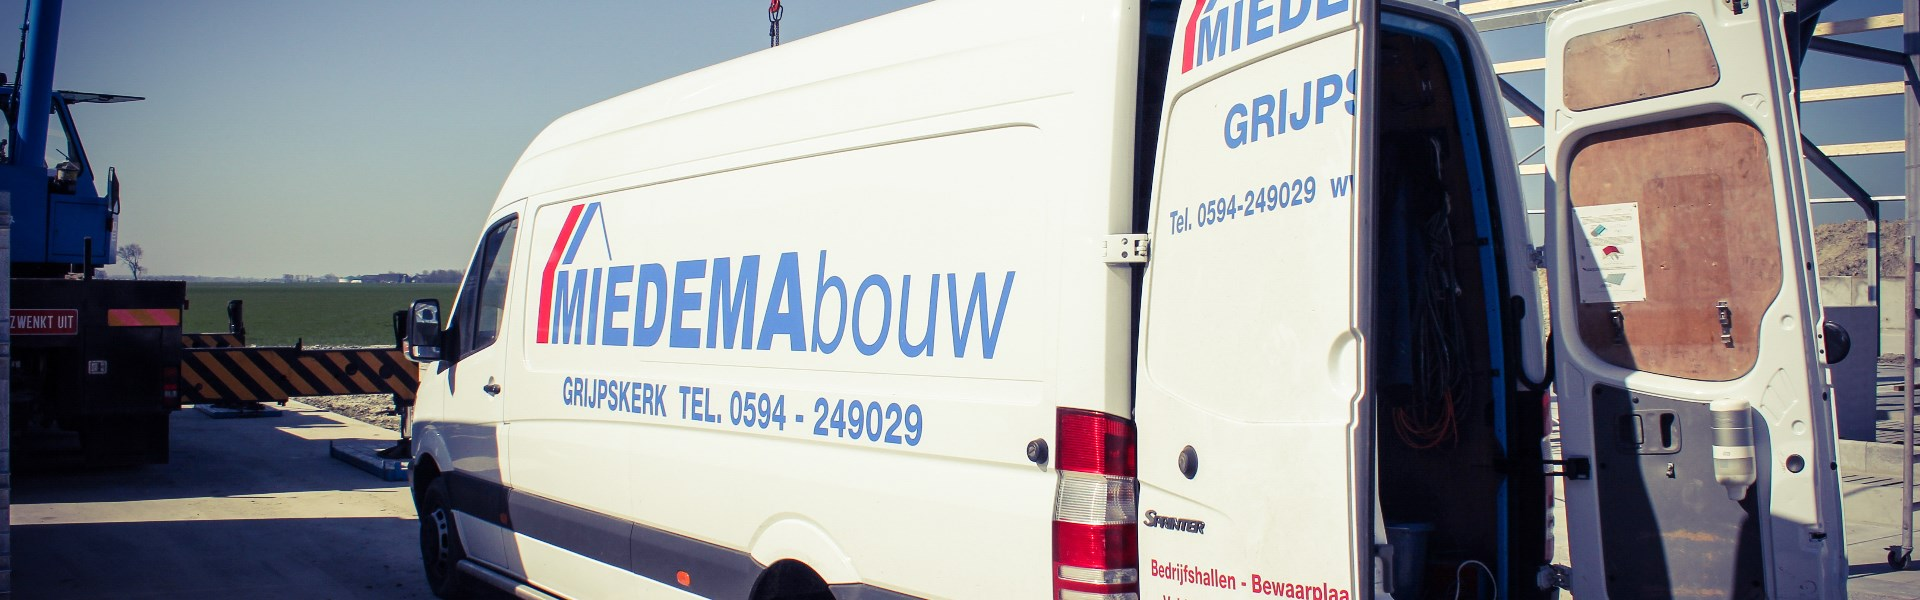 Sliderfoto contact 1 Miedema Bouw